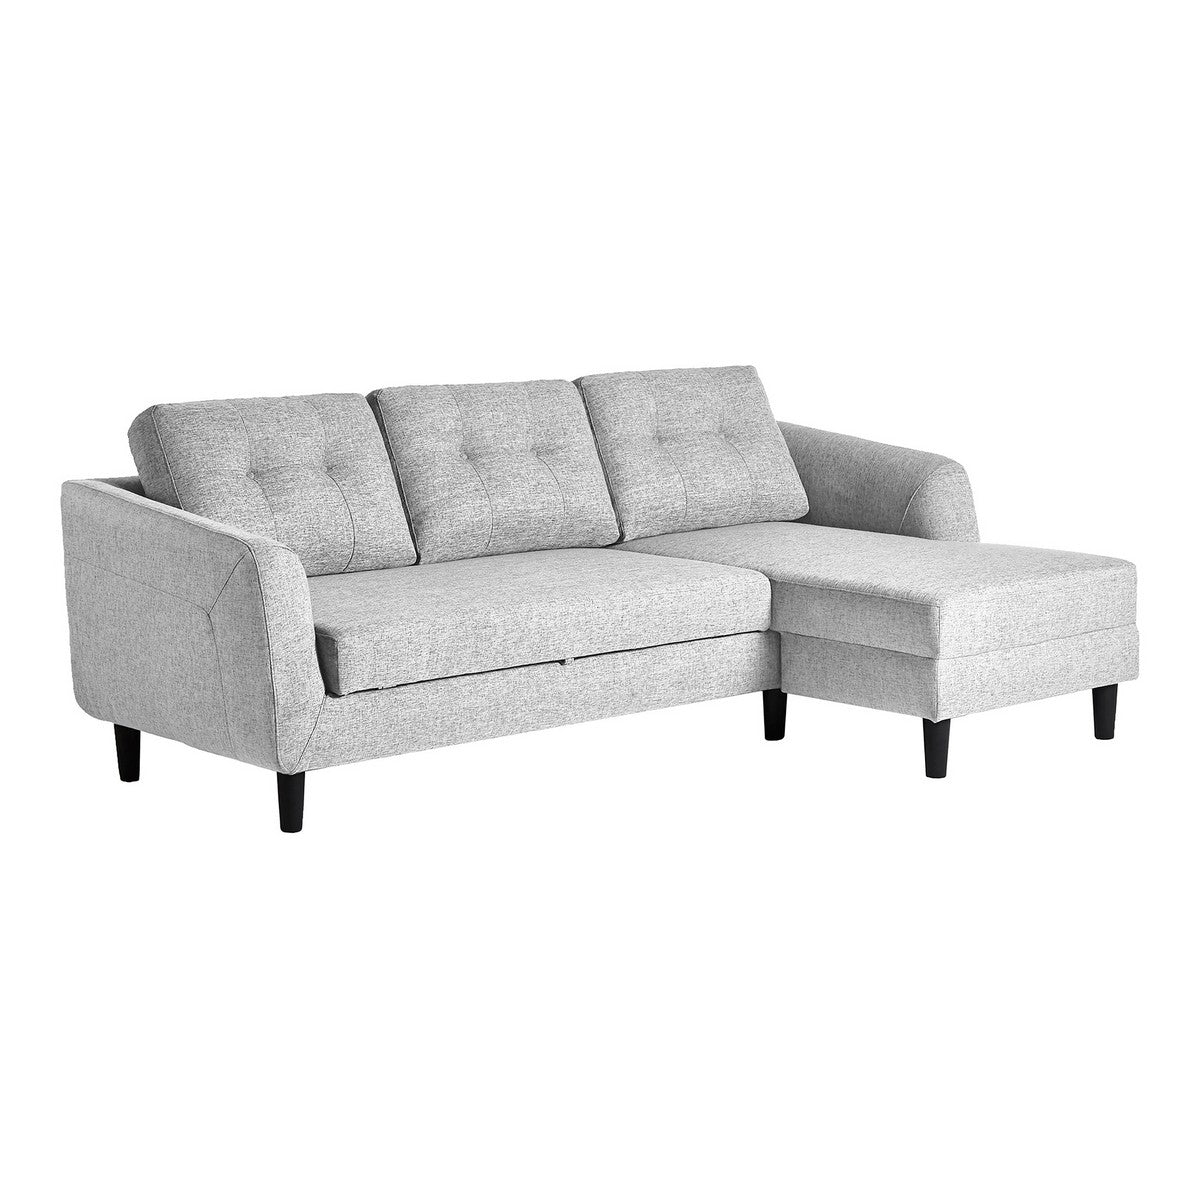 Moe's Home Collection Belagio Sofa Bed With Chaise Light Grey Right - MT-1019-29-R - Moe's Home Collection - Sofa Beds - Minimal And Modern - 1